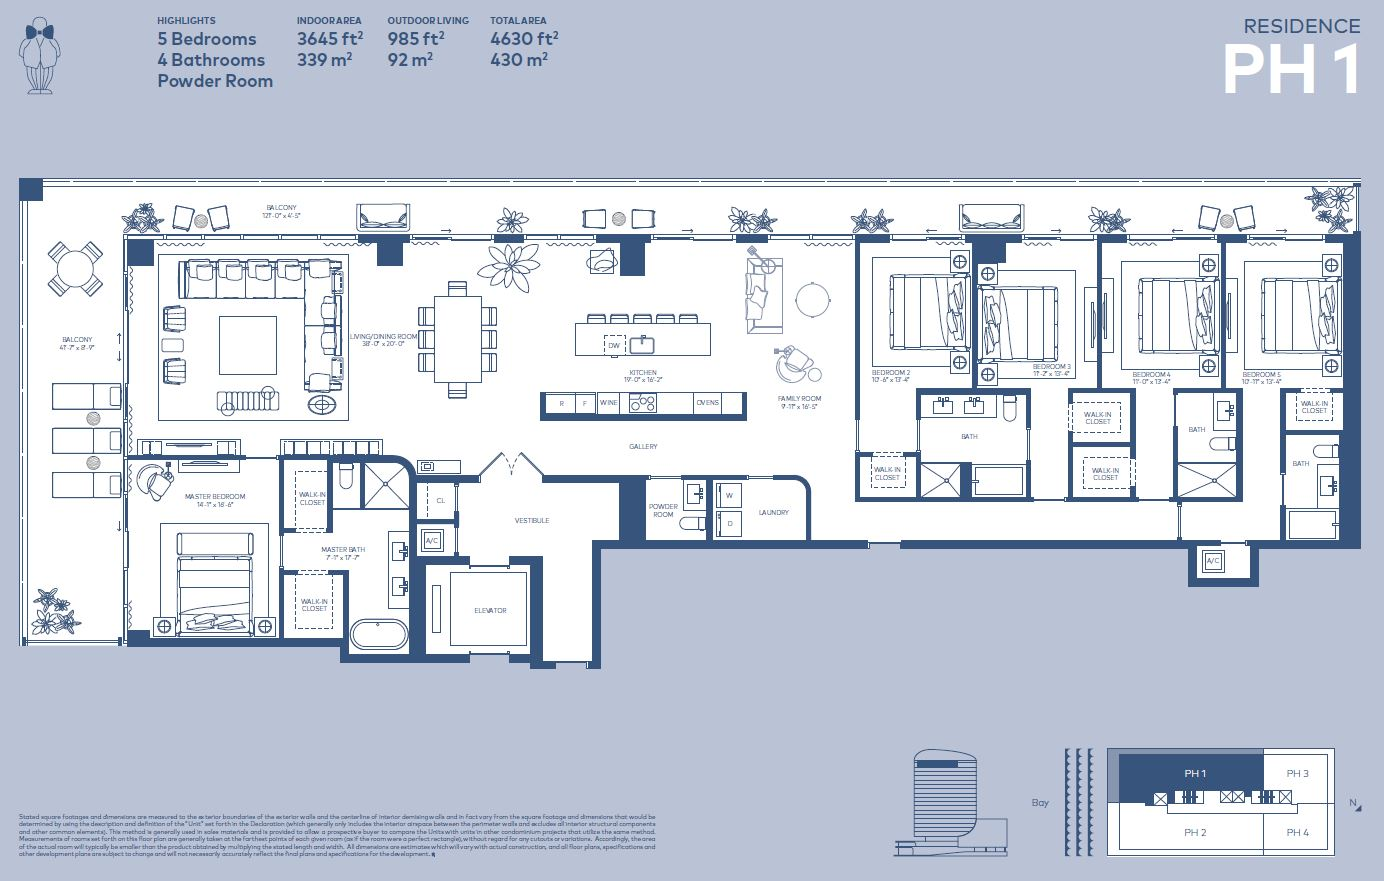 Floorplan PH 1